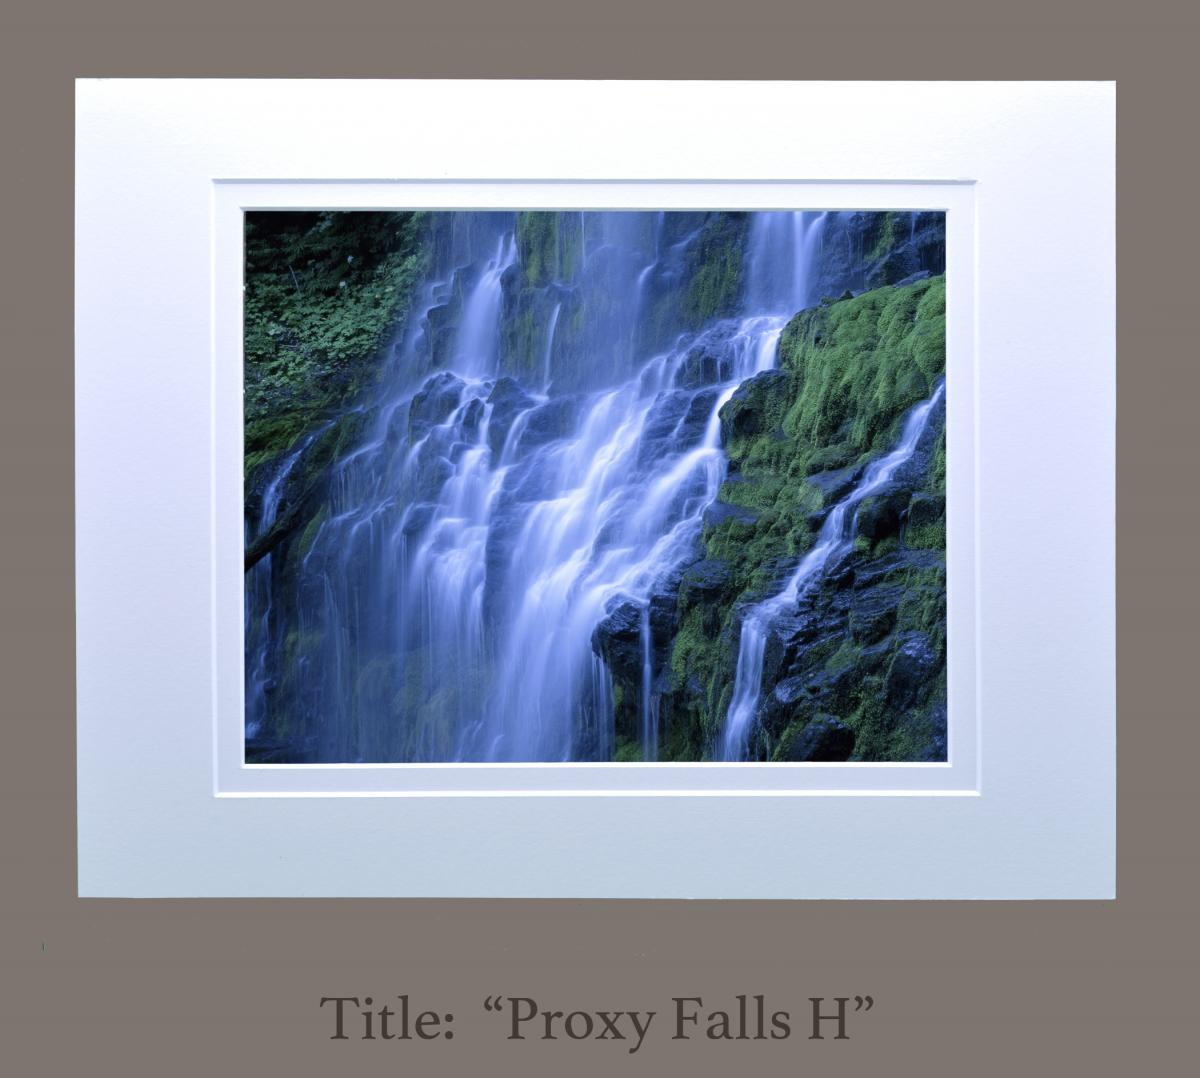 "8"" x 10"" matted photographs, 11"" x 14"" frame size (Gallery 3)"